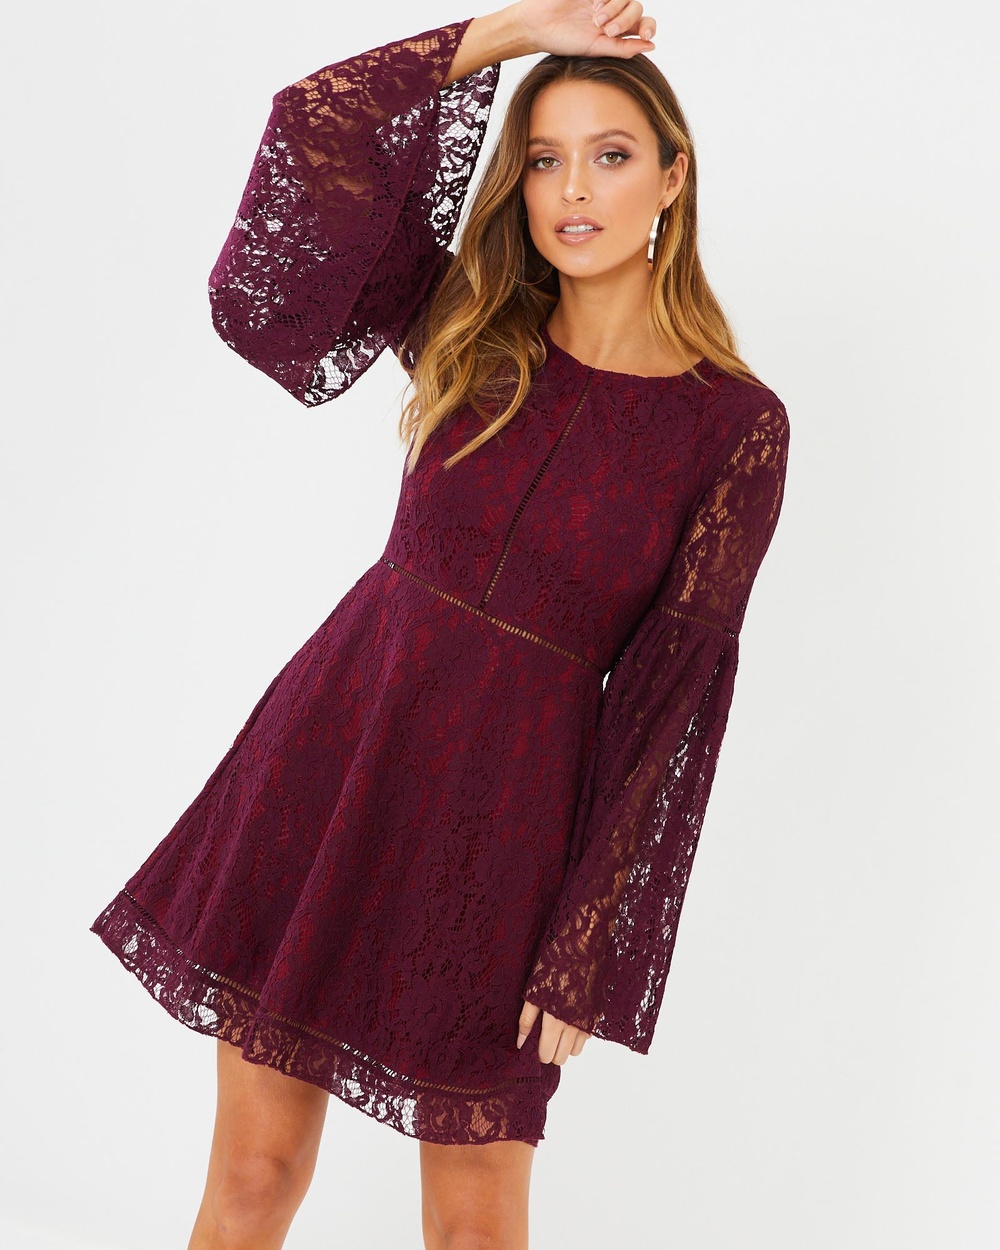 Calli Nina Dress Dresses Burgundy Nina Dress